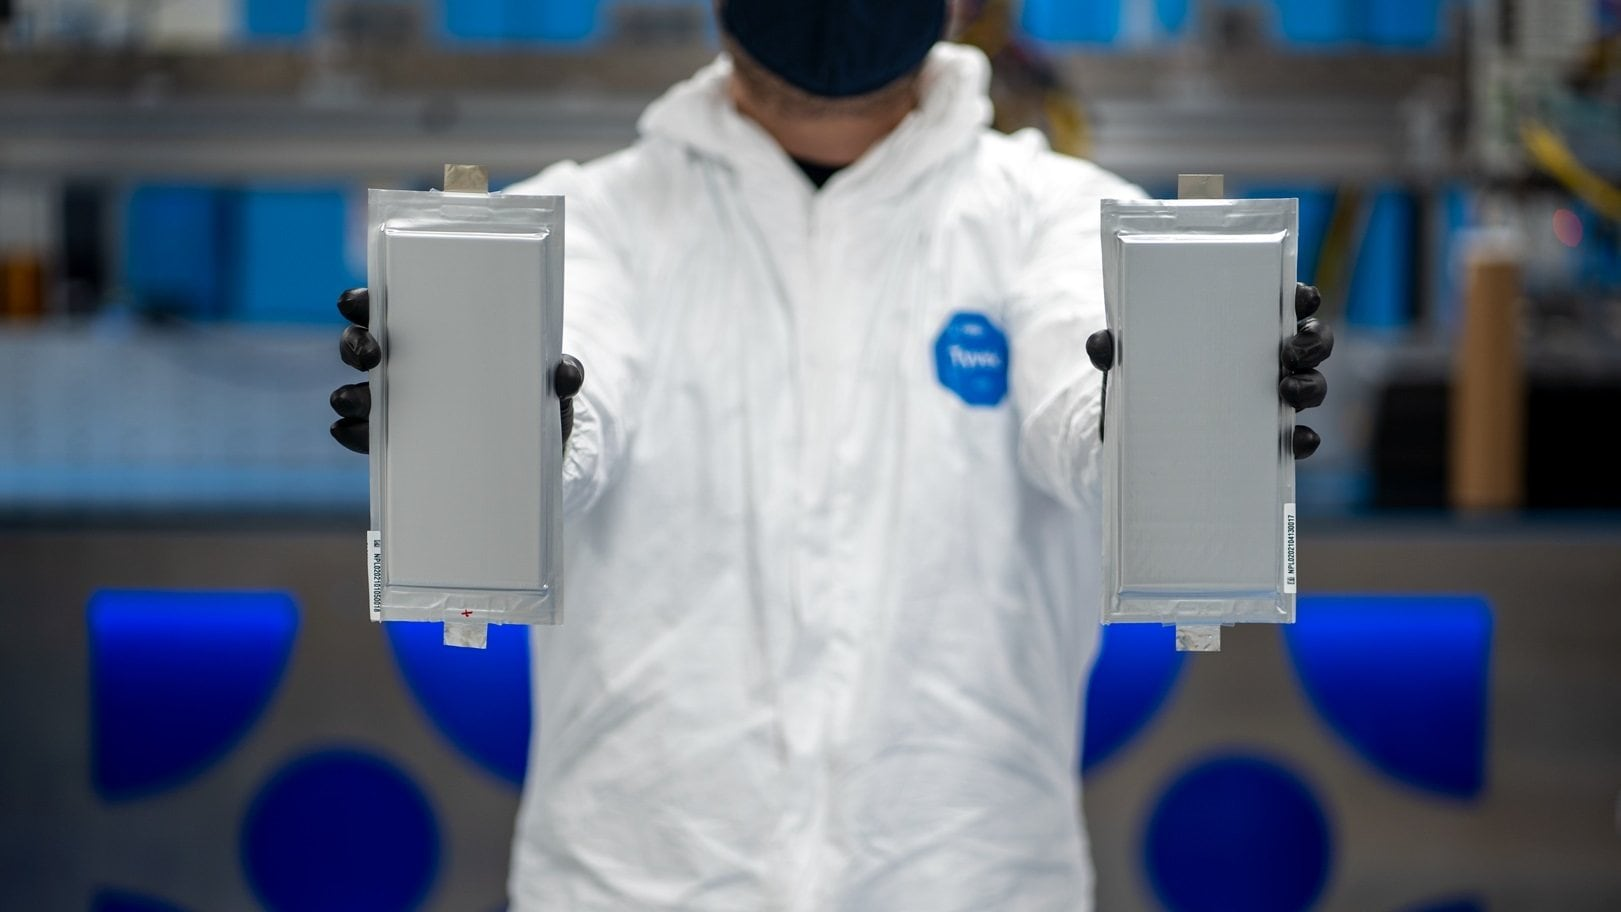 Ford bets on semiconductor batteries to reduce electrification costs, making electric cars affordable - Technology News, Firstpost